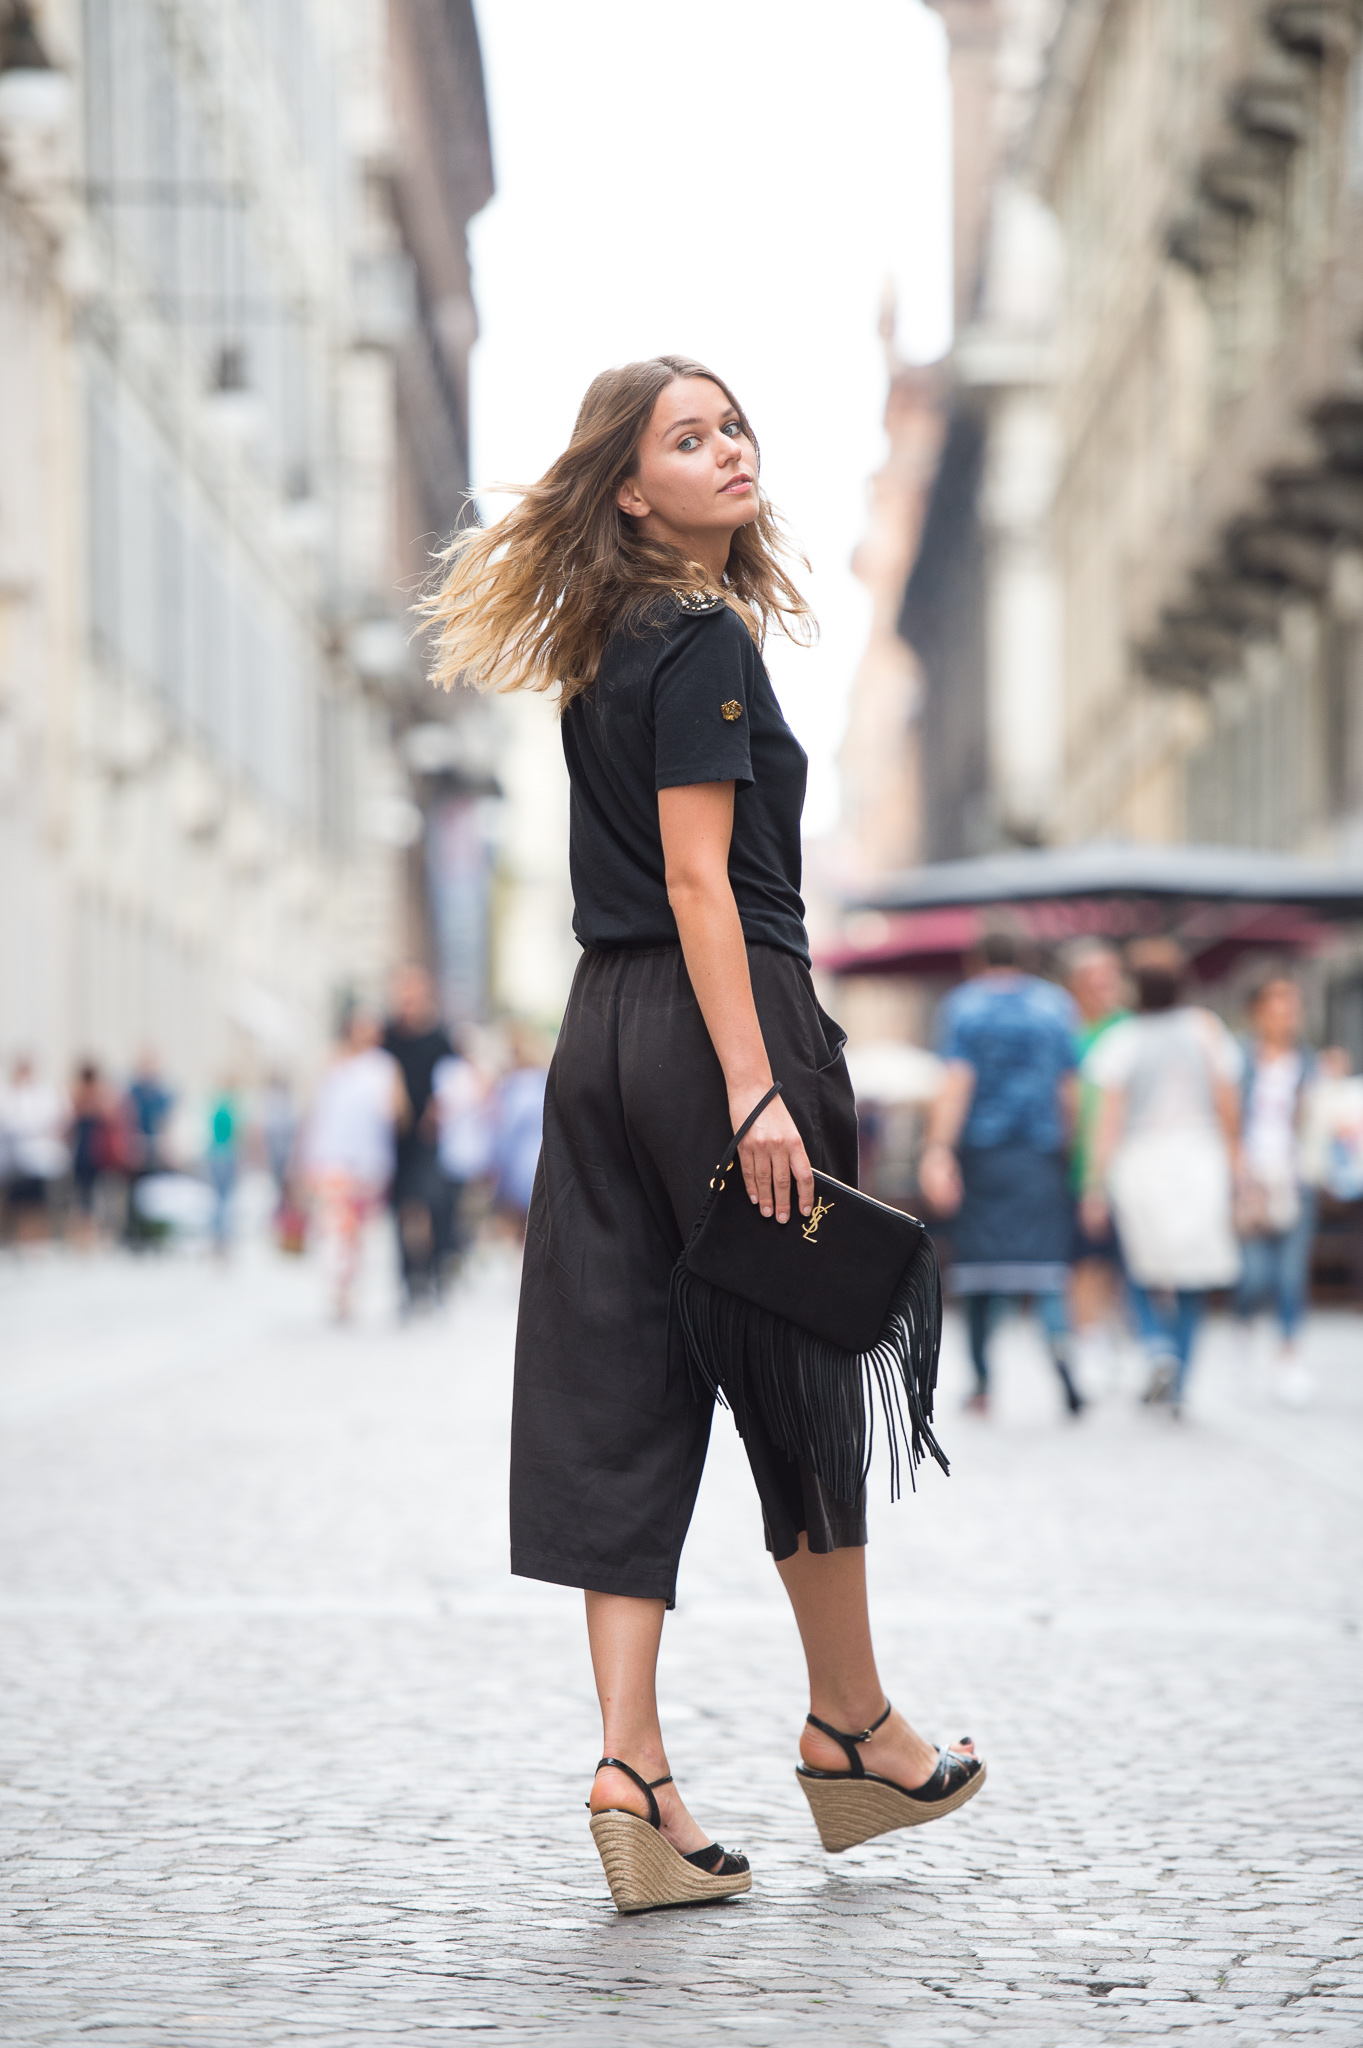 breezy summer in black with svetlana shashkova